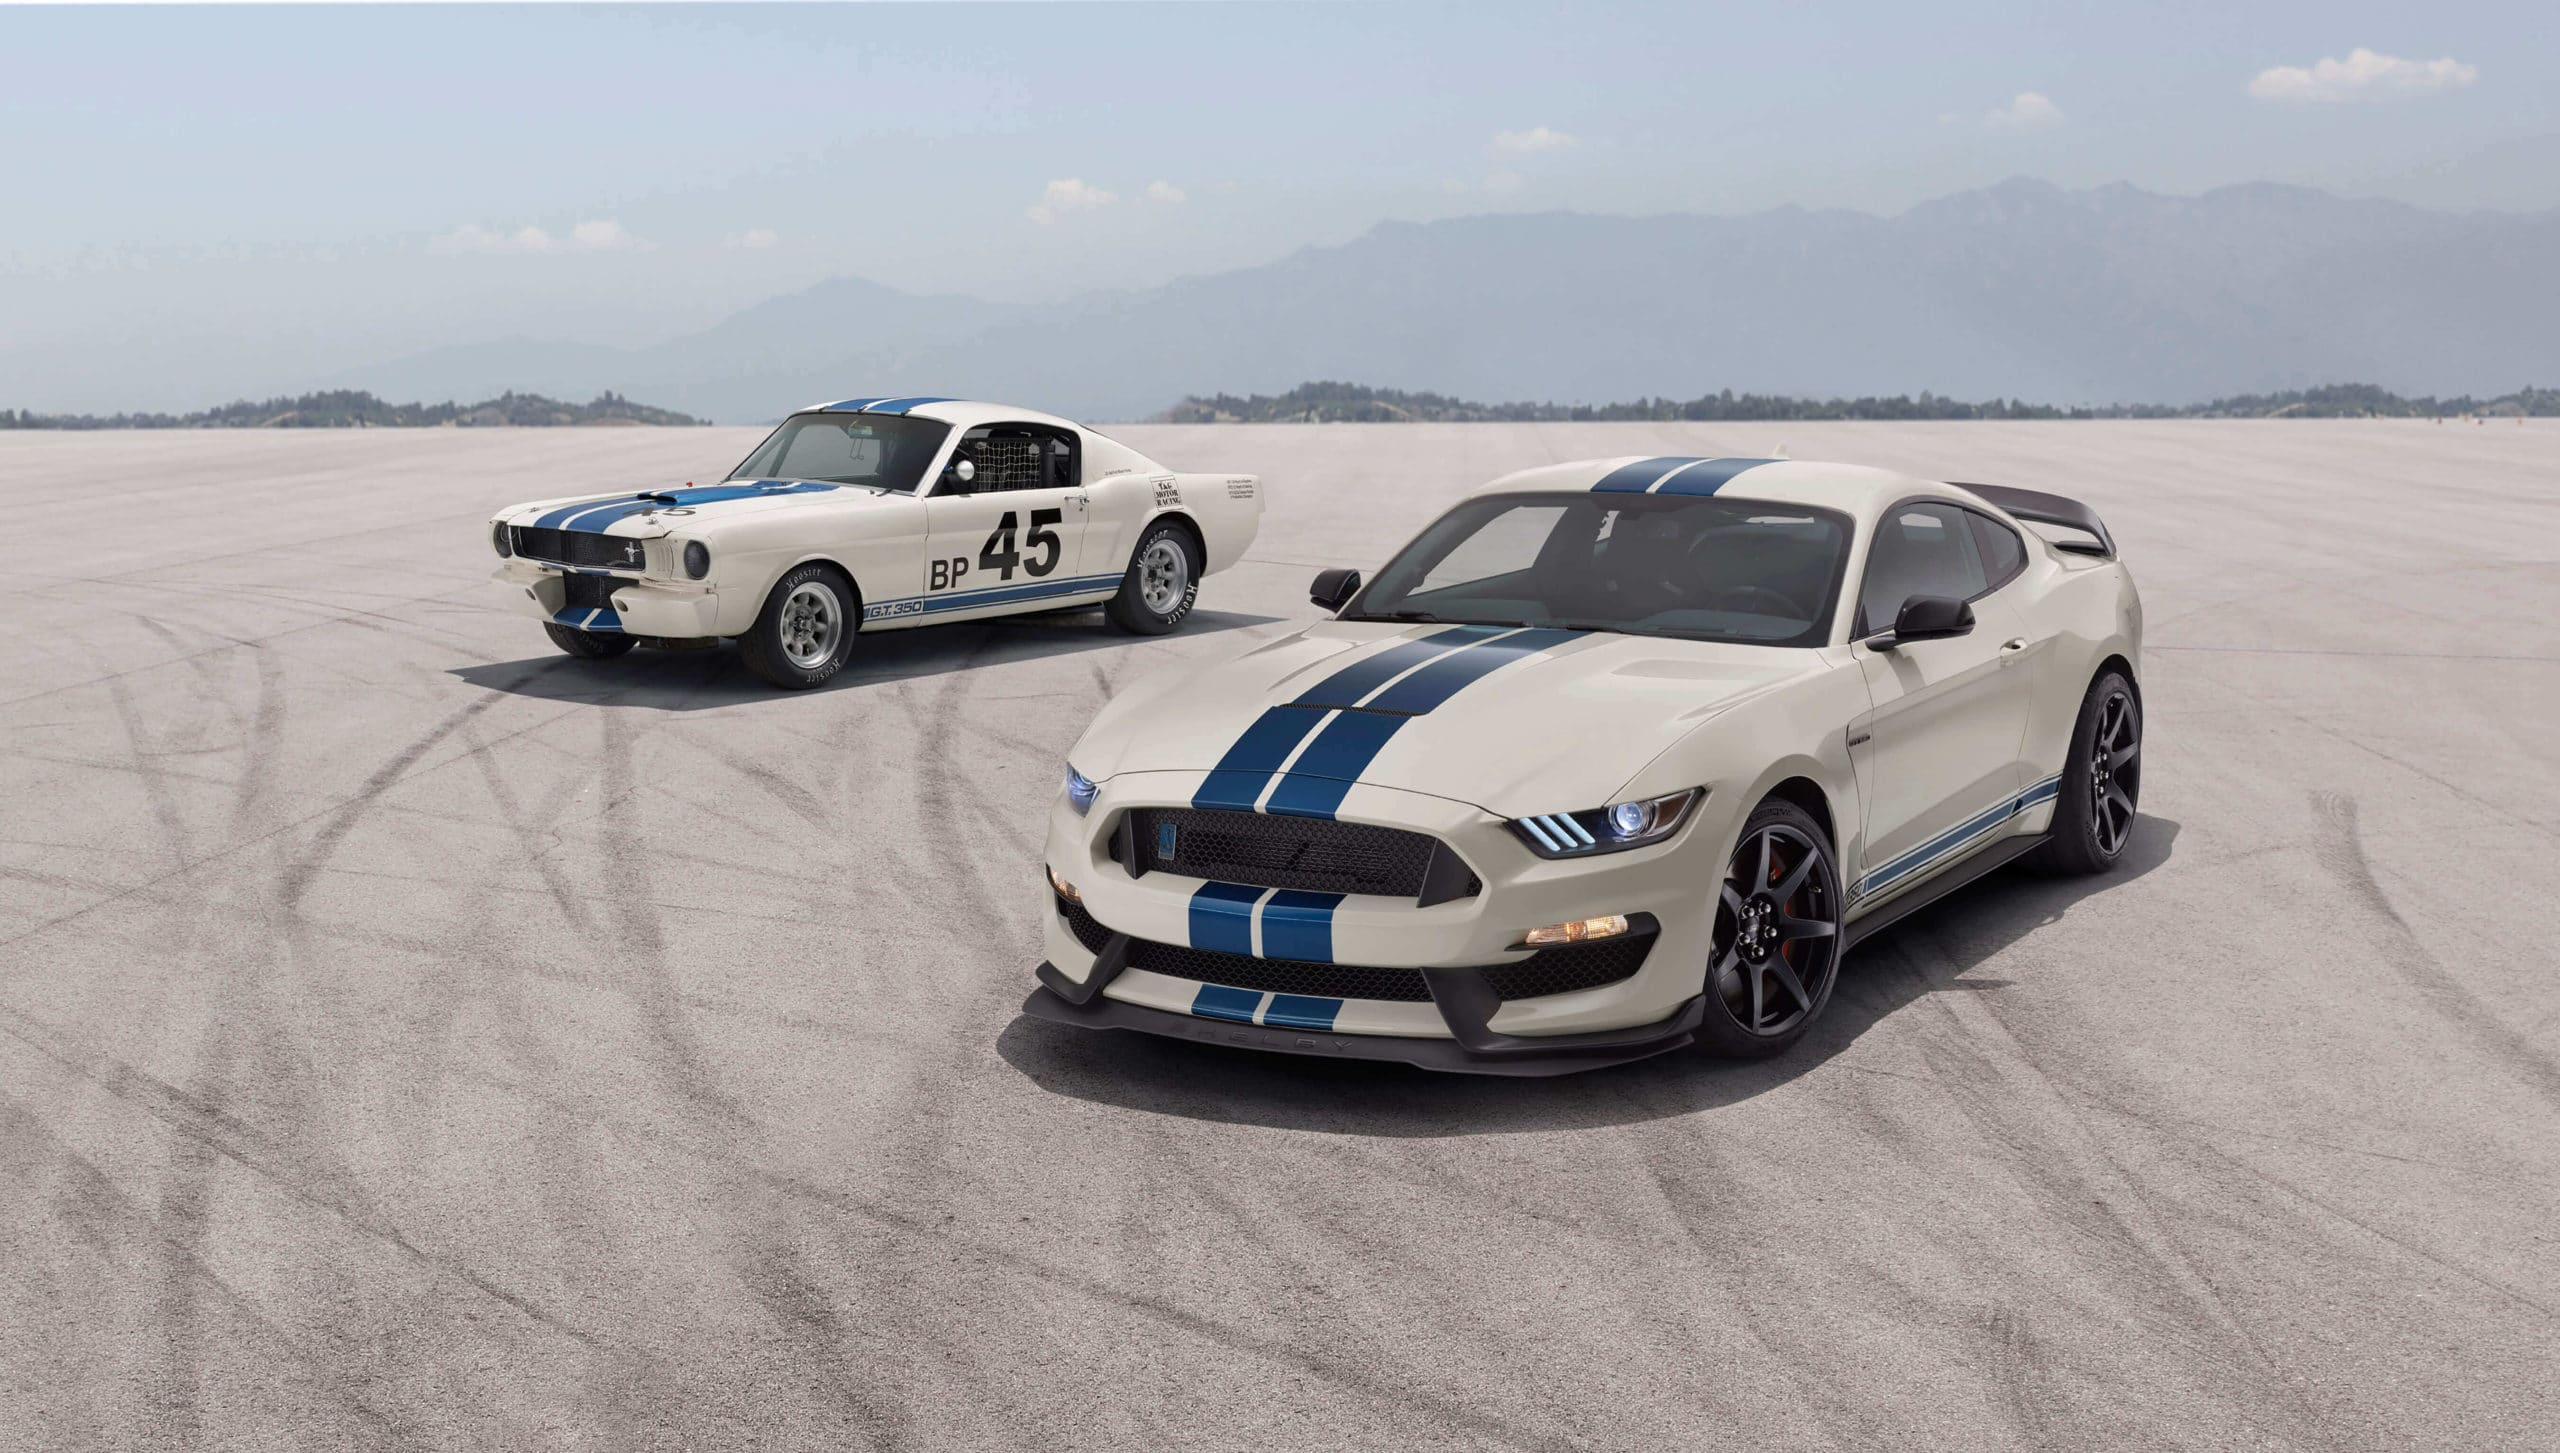 Shelby GT350 55th anniversary